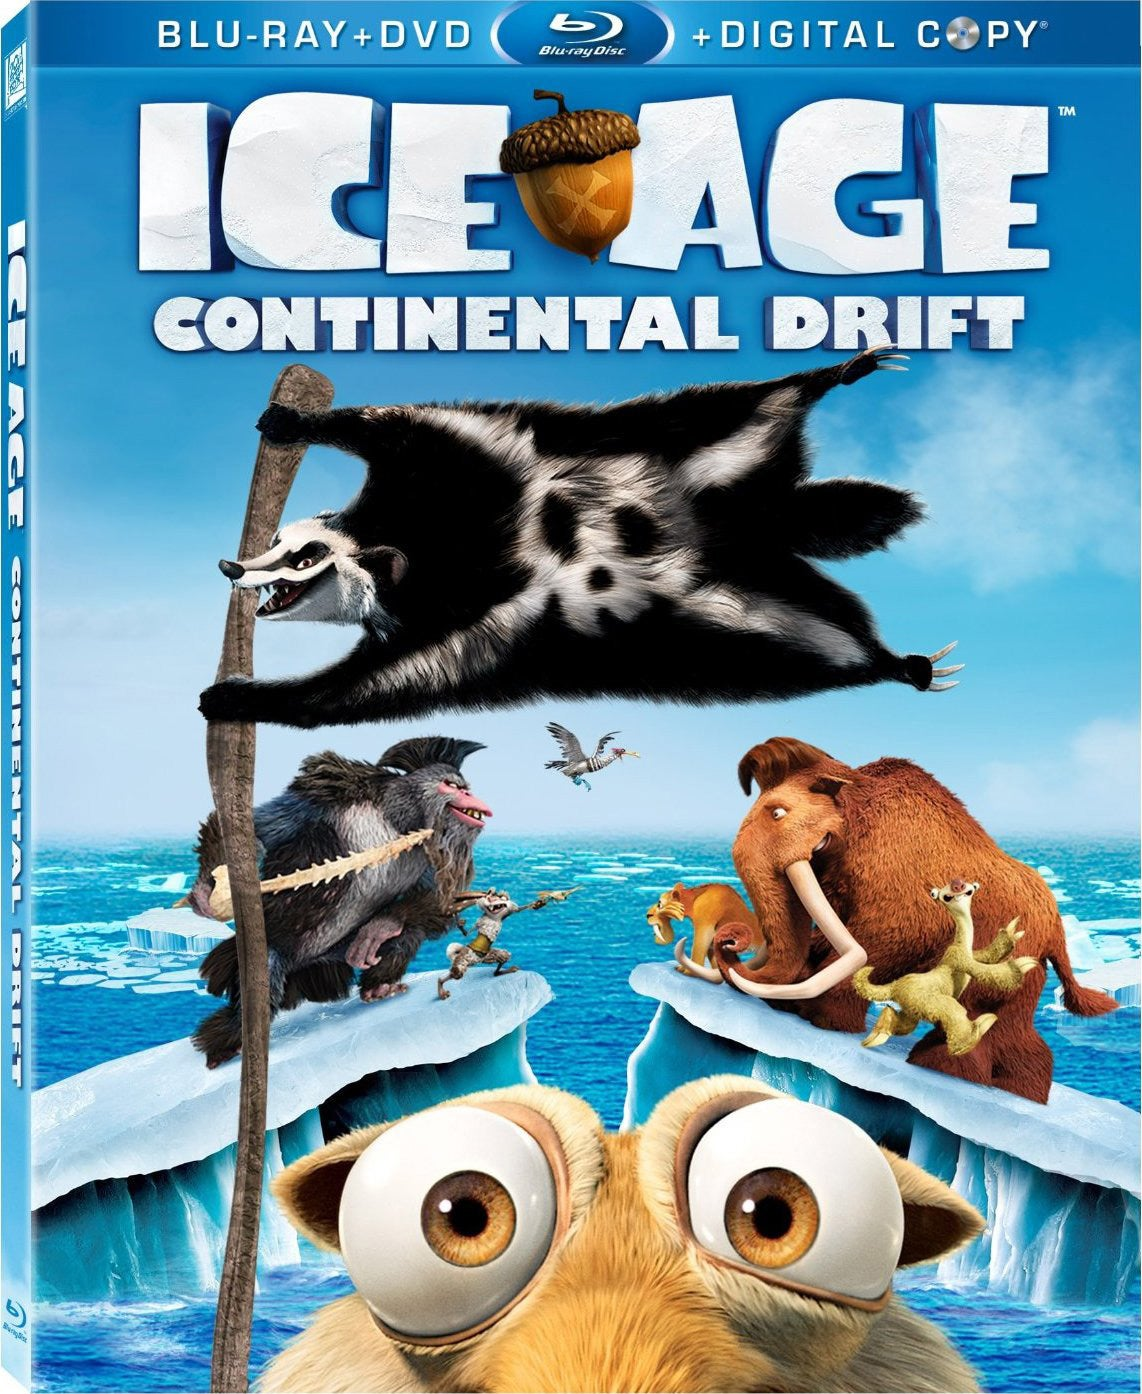 Ice Age: Continental Drift (Blu-ray/DVD)